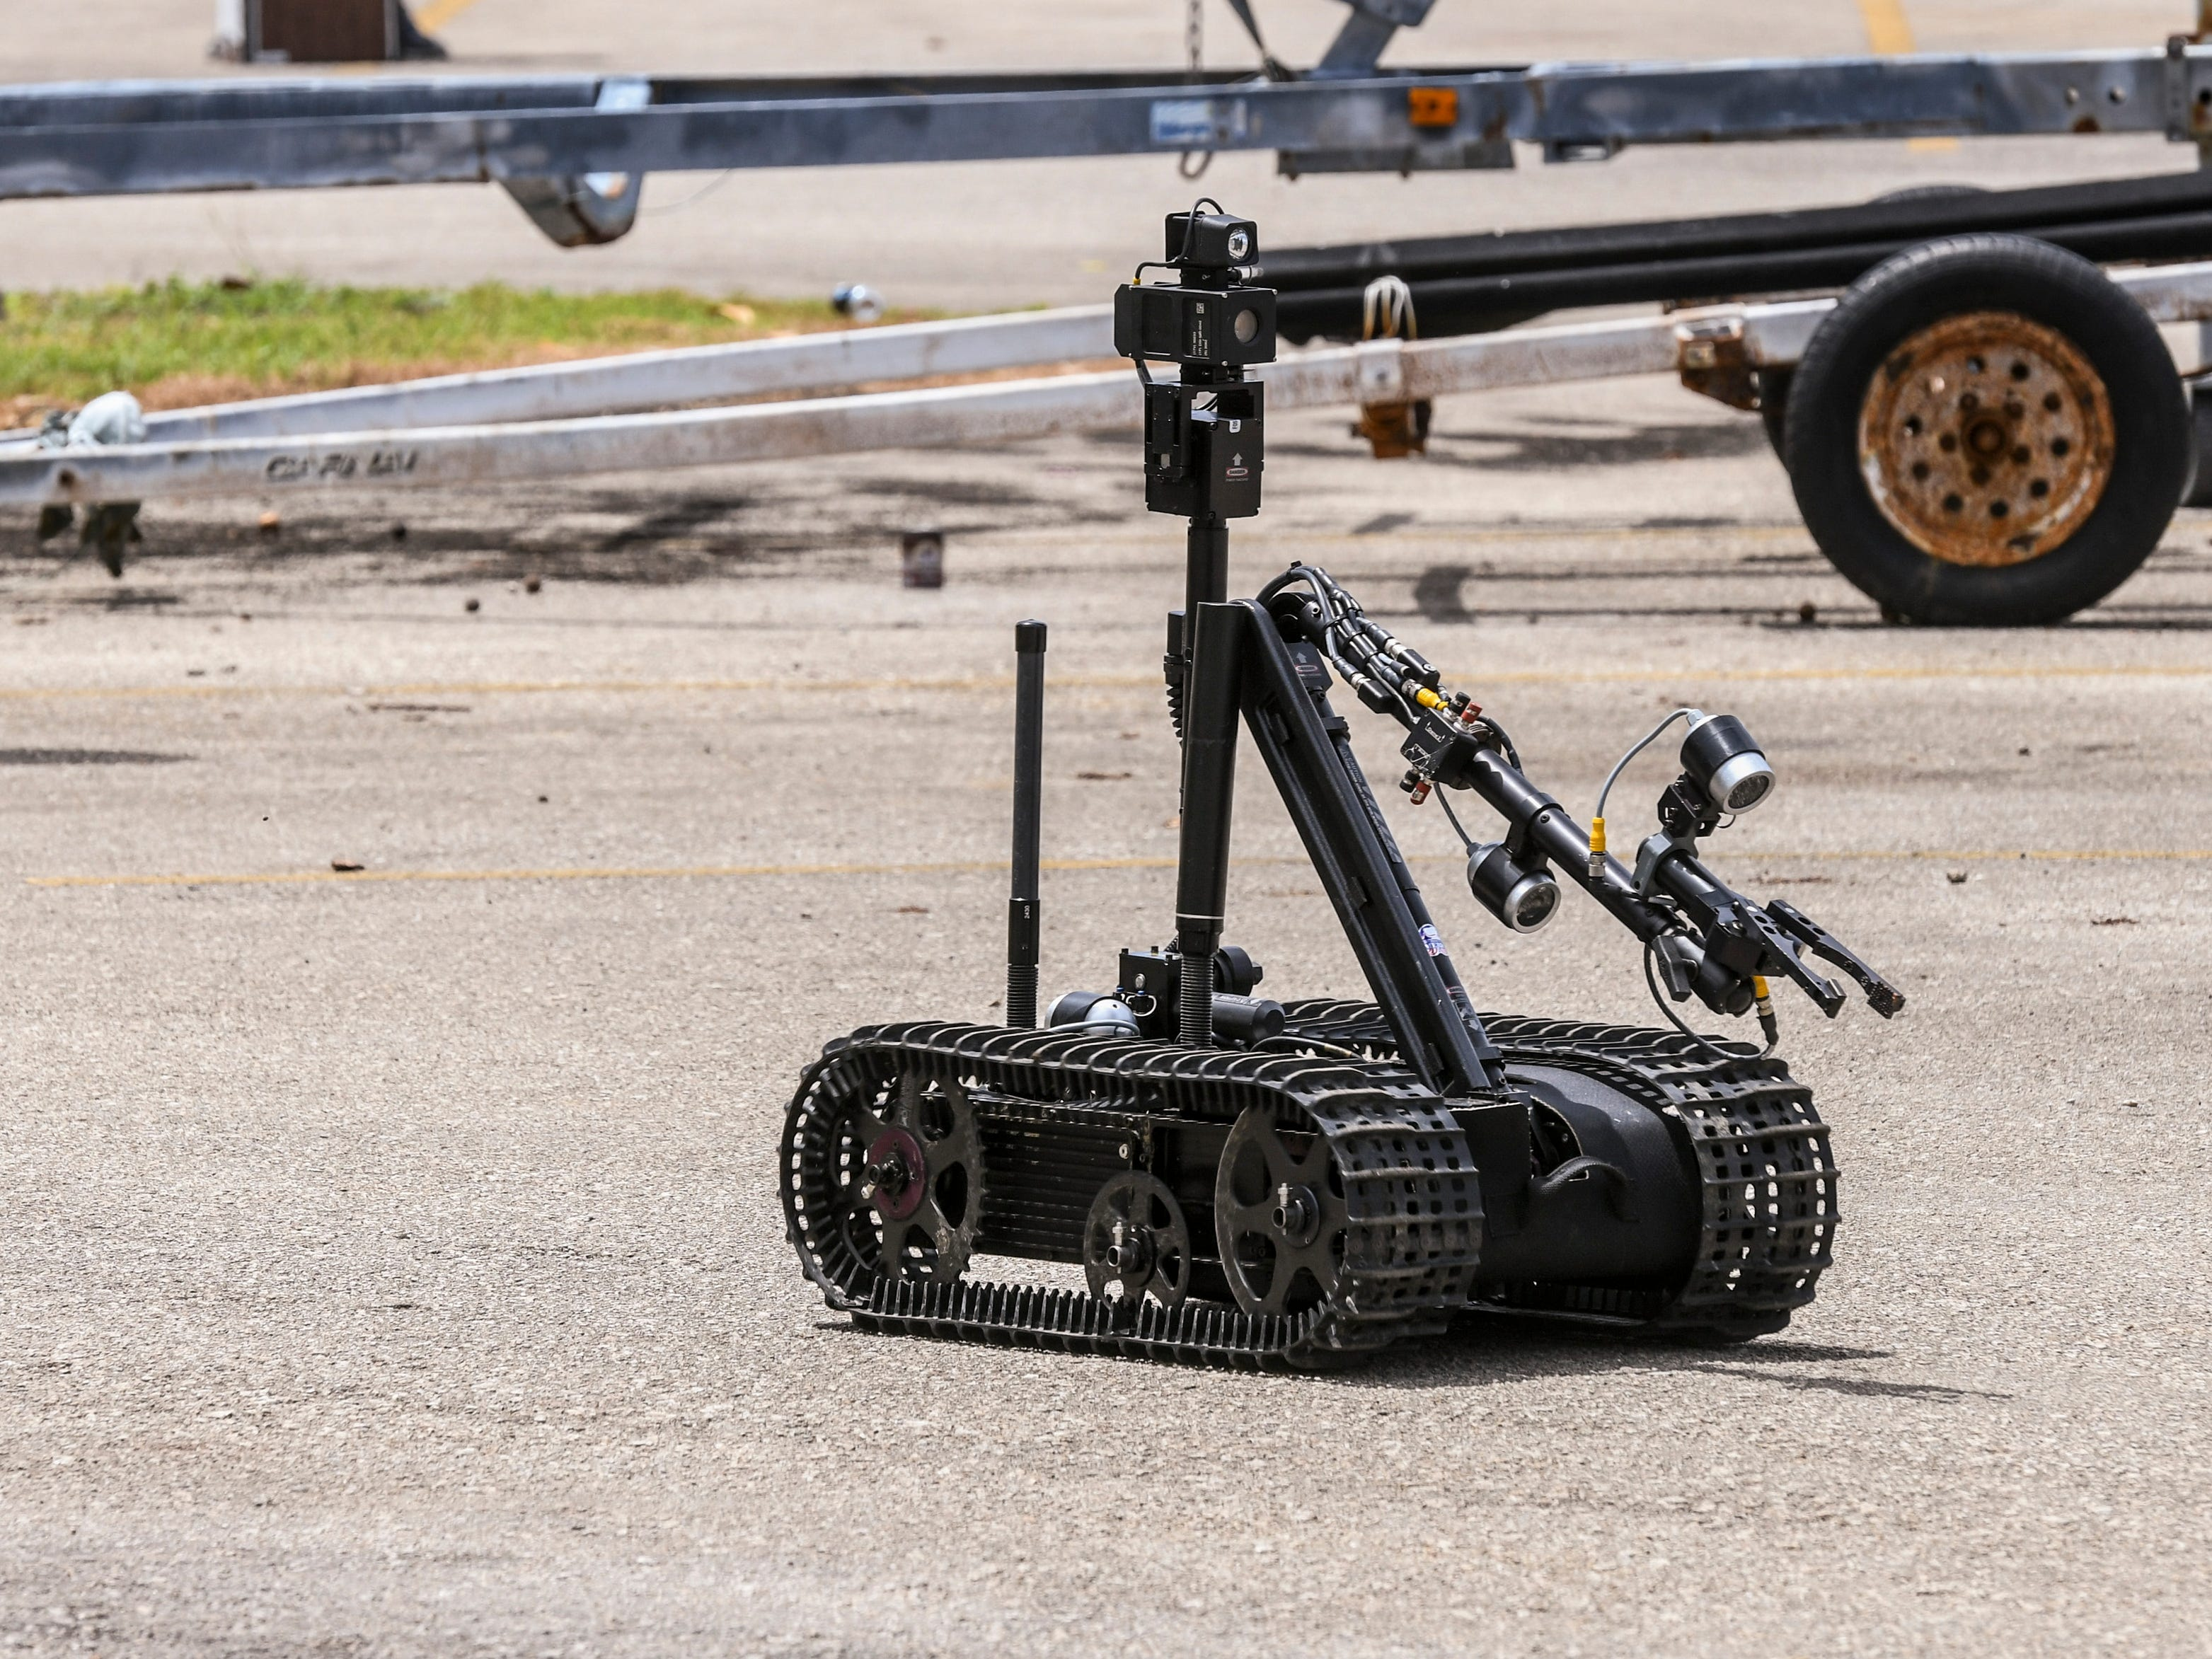 One of two radio-controlled bombs disposal robots can be seen returning to its transport vehicle as local and federal law enforcement agencies prepare to conclude their initial investigation of a suspicious device found outside the Guam Fire Department Rescue Base at the Agat Marina compound on Tuesday, March 12, 2019.